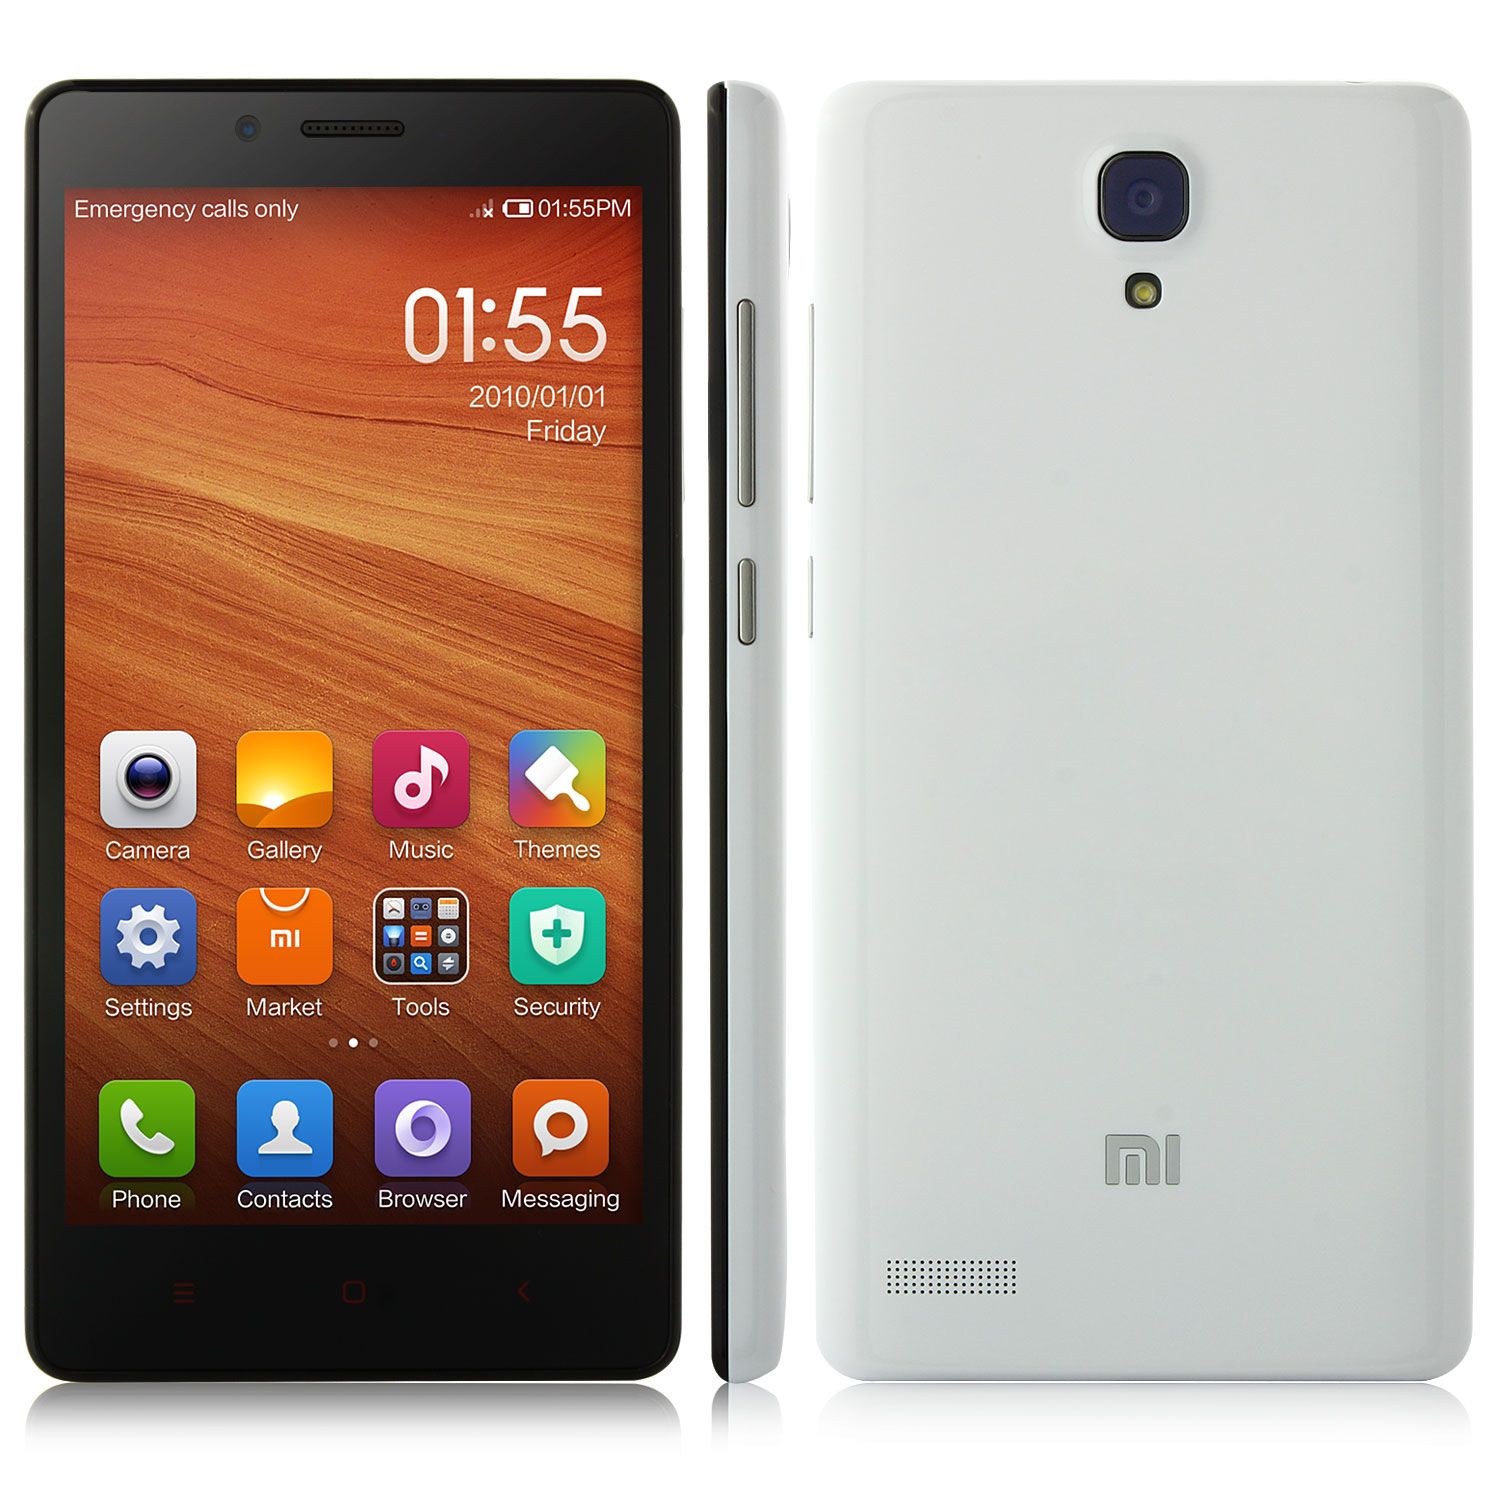 XIAOMI Redmi Note 4G LTE 64bit Snapdragon 410 2GB 16GB 5.5 Inch HD IPS 13.0MP 3100mAh